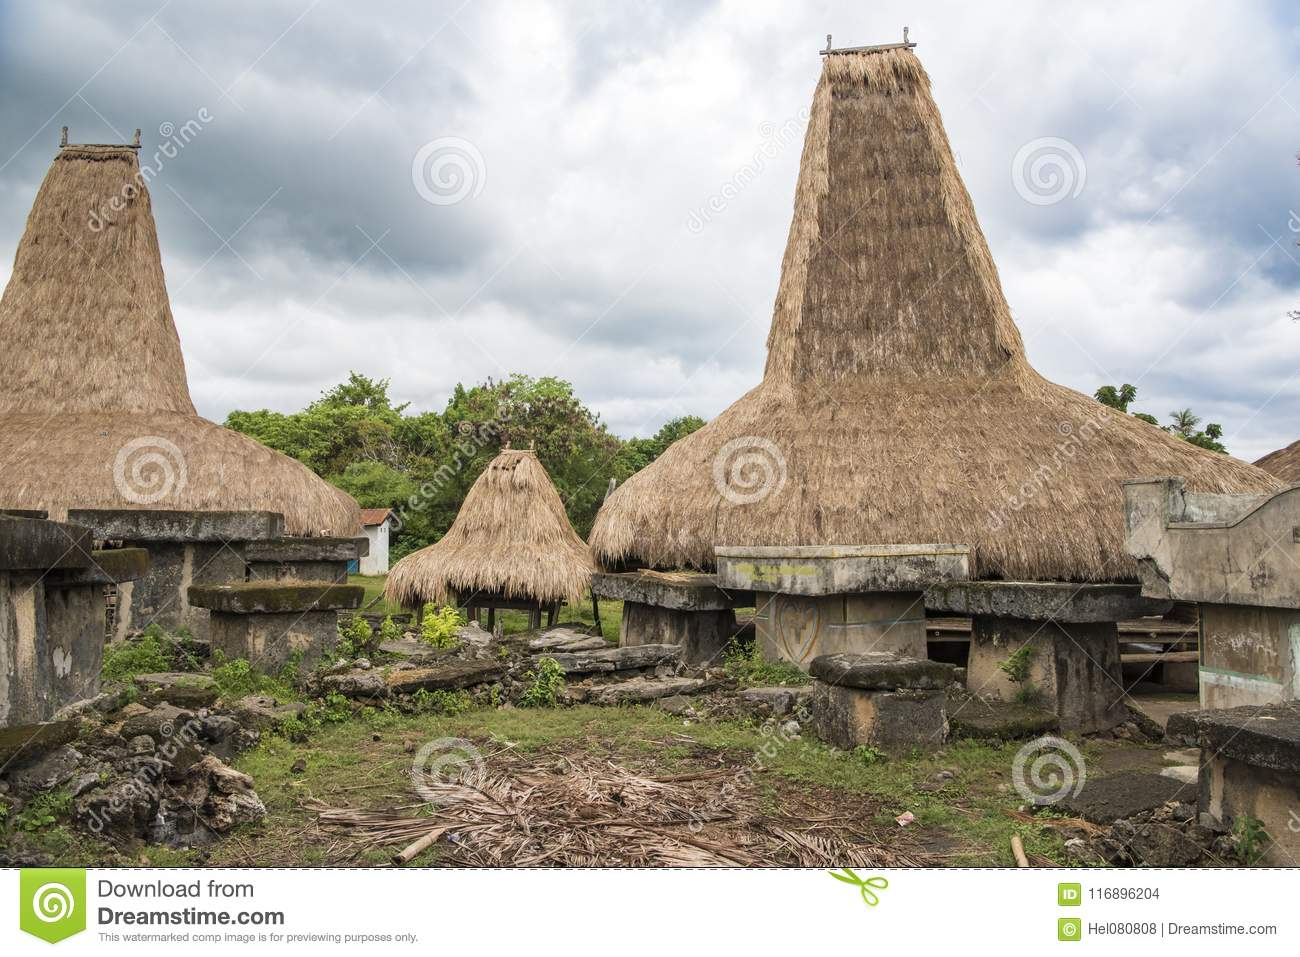 Typical houses with tall roofs, Kodi, Sumba Island, Nusa Tenggara